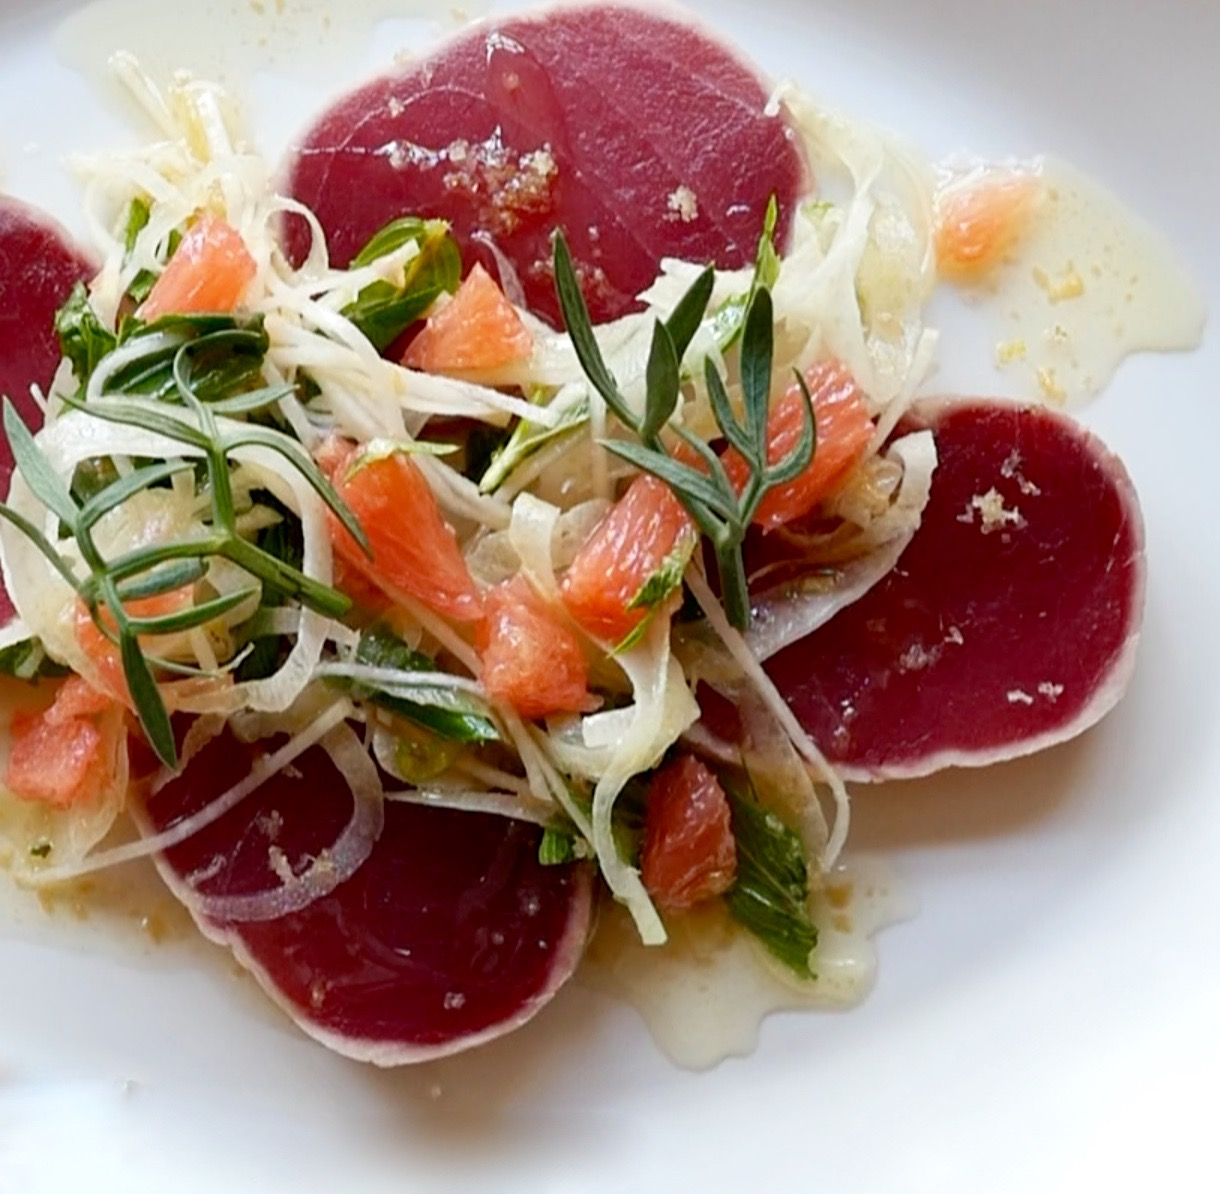 SEARED YELLOW FIN TUNA, KOHIRABI, FENNEL, GRAPEFRUIT, MINT, SEA FENNEL AND RED VEIN SORREL